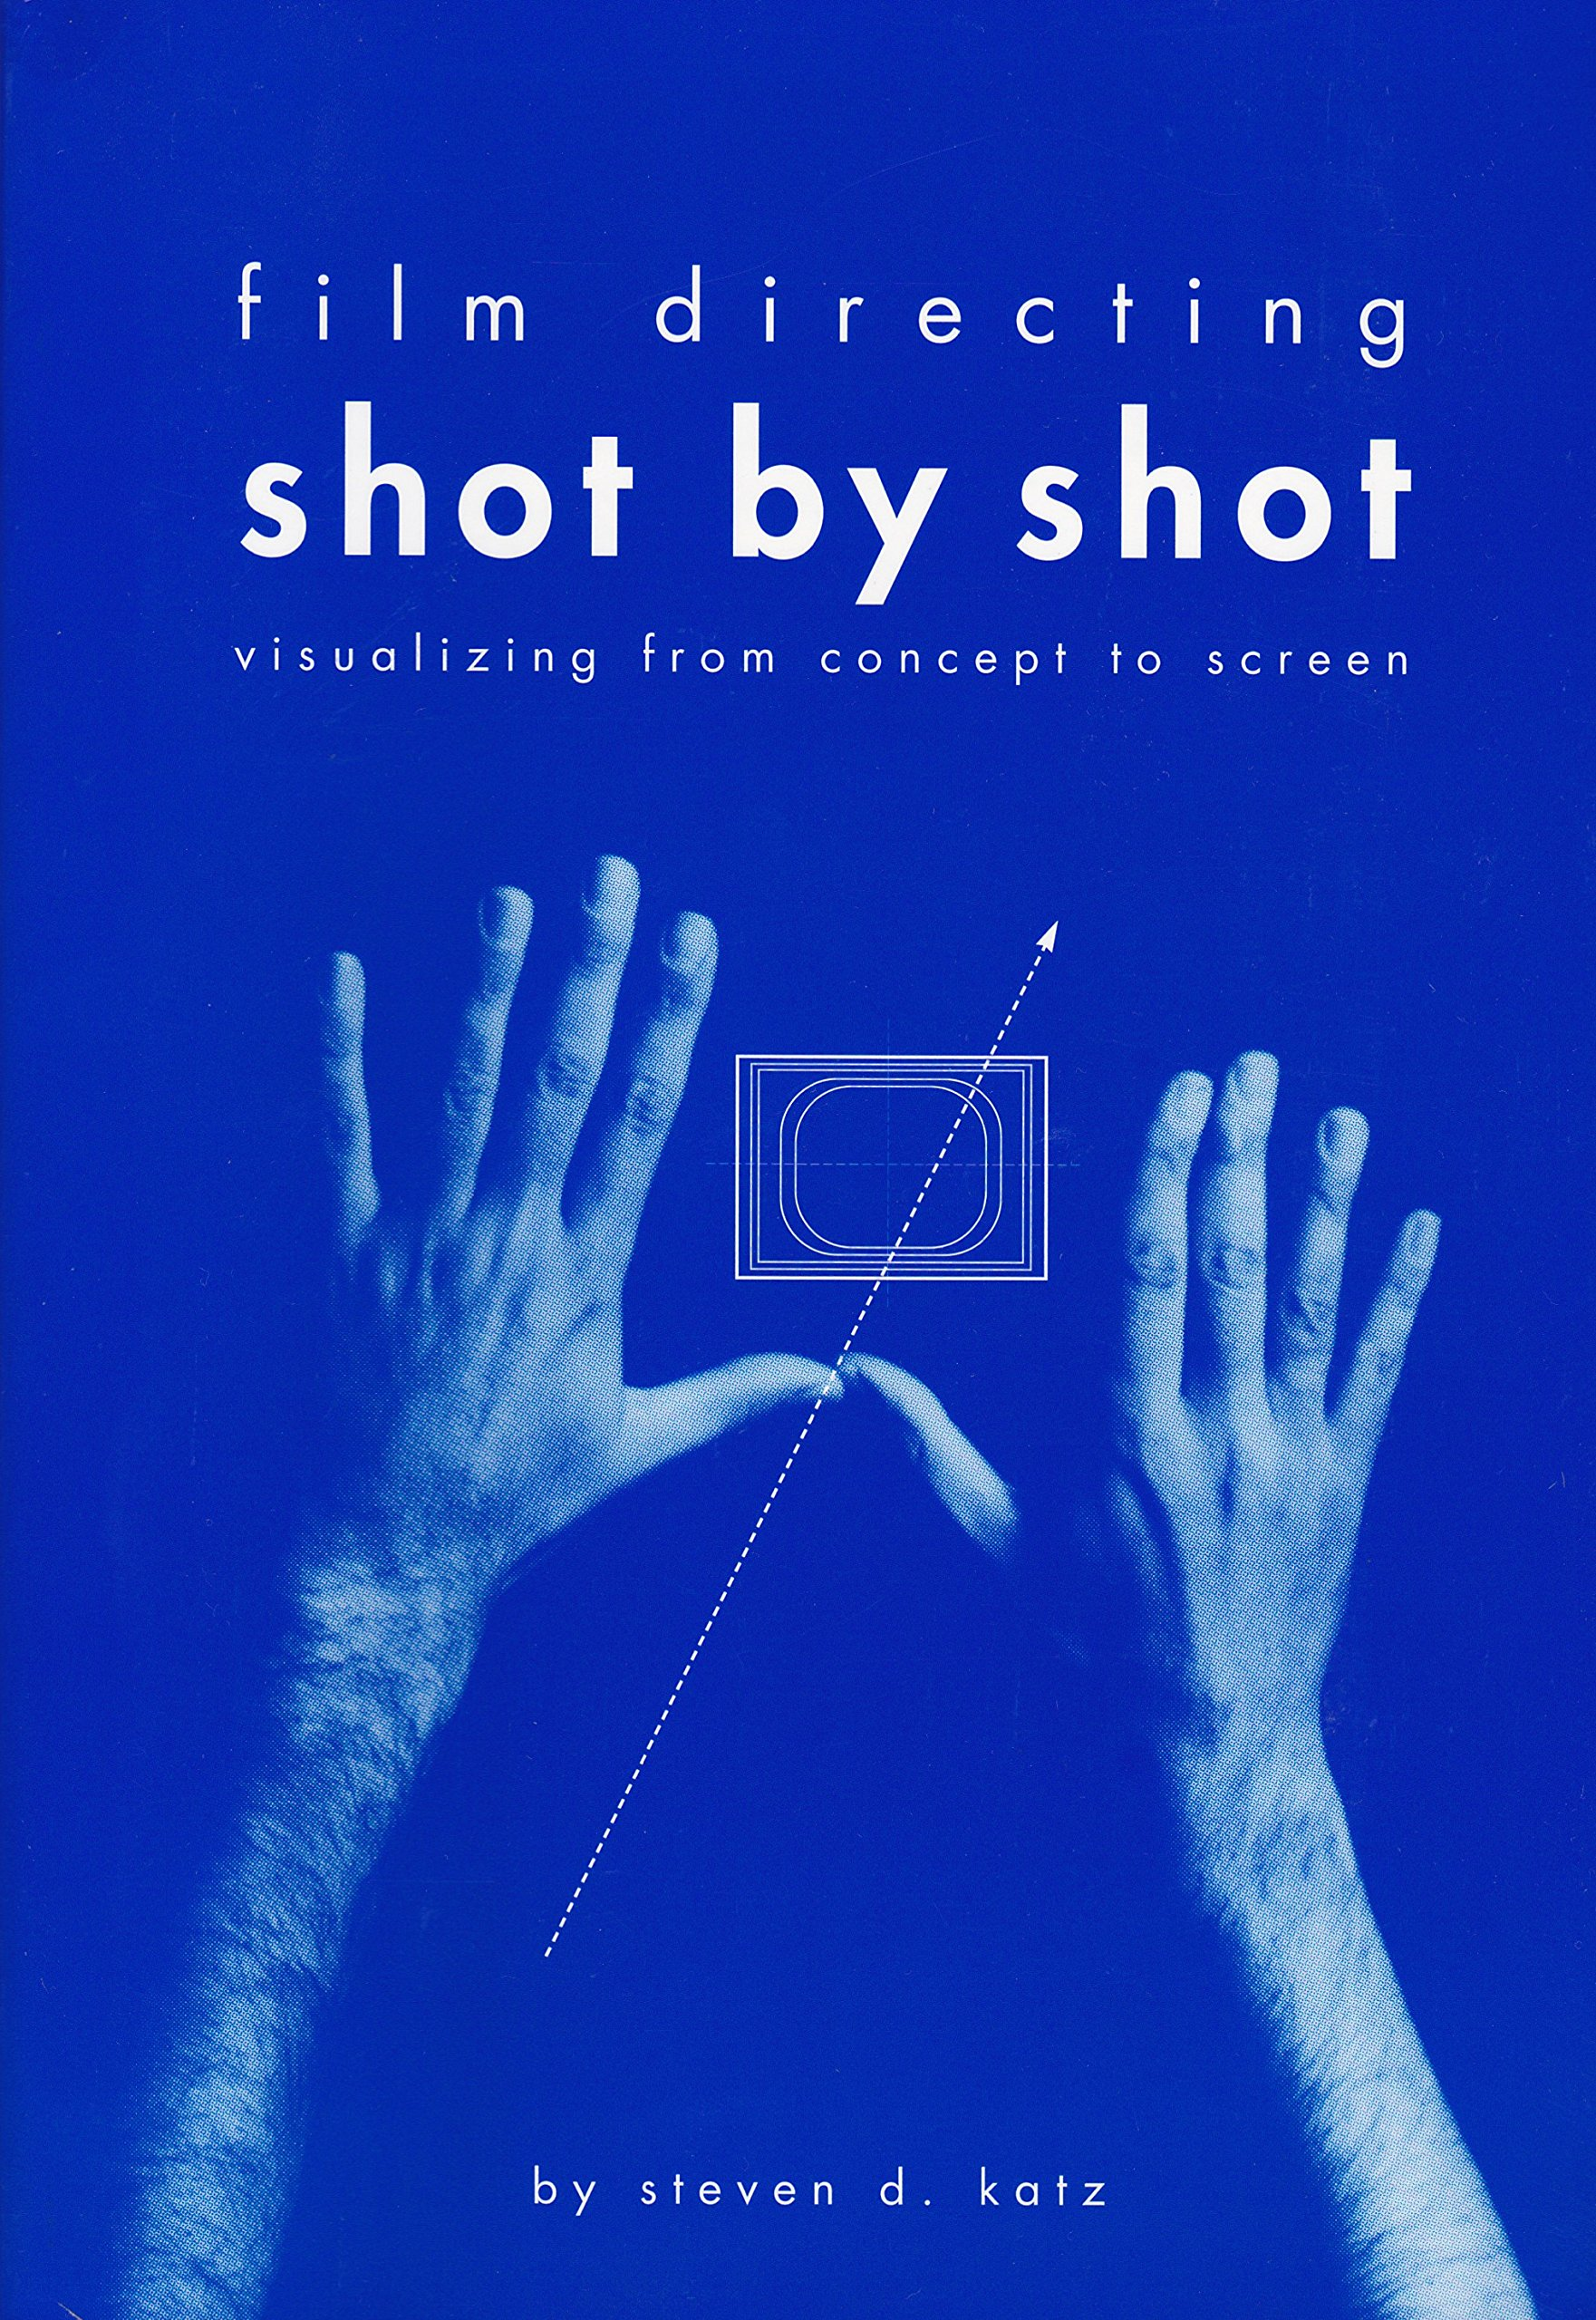 film directing shot by shot visualizing from concept to screen